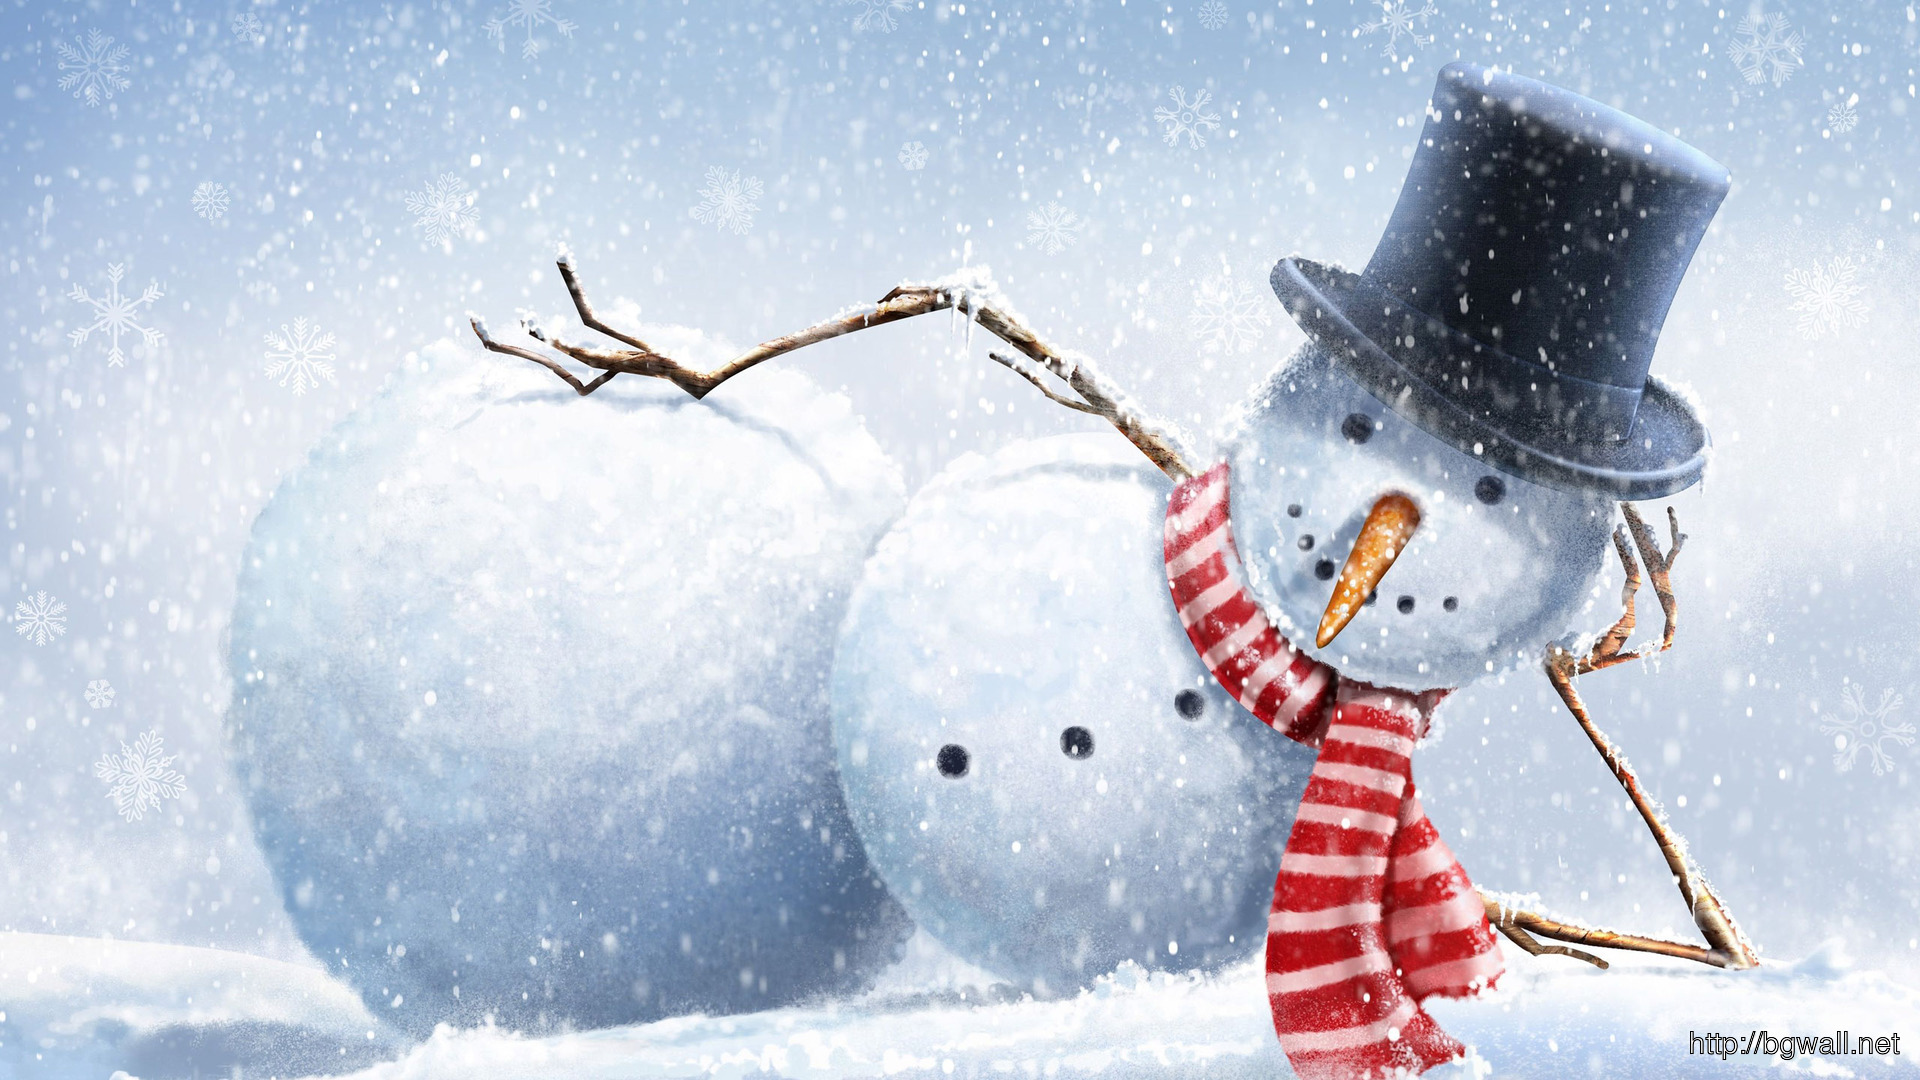 One Piece Desktop Wallpaper Quote Snowman Chilling Wallpaper 16985 Full Size Background